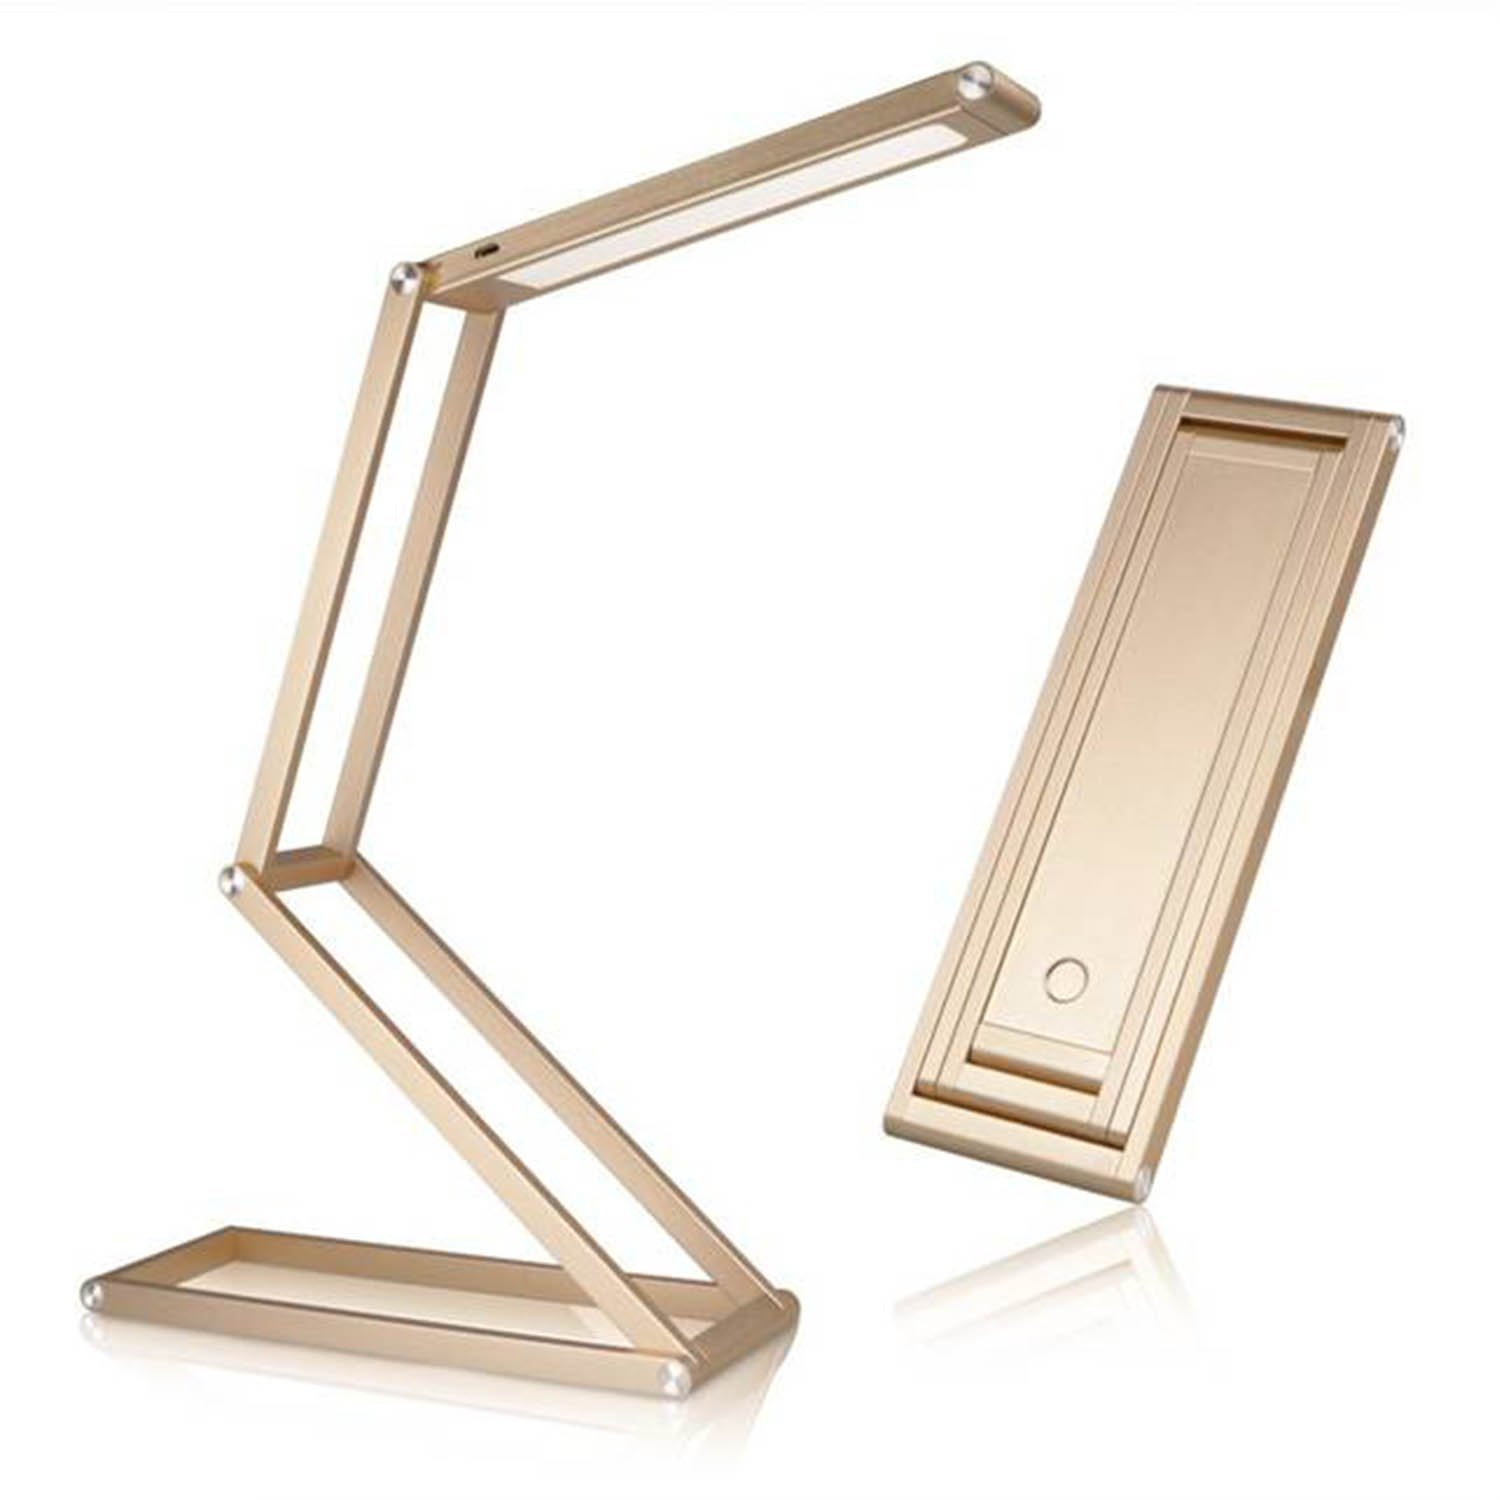 Portable Metal Desk Lamp LED, Dimmable Foldable LED Desk Lamp with USB Charging Port, Flexible Arm, Rotatable Head, Eye-Friendly Design, Gold Aluminum Alloy 3W